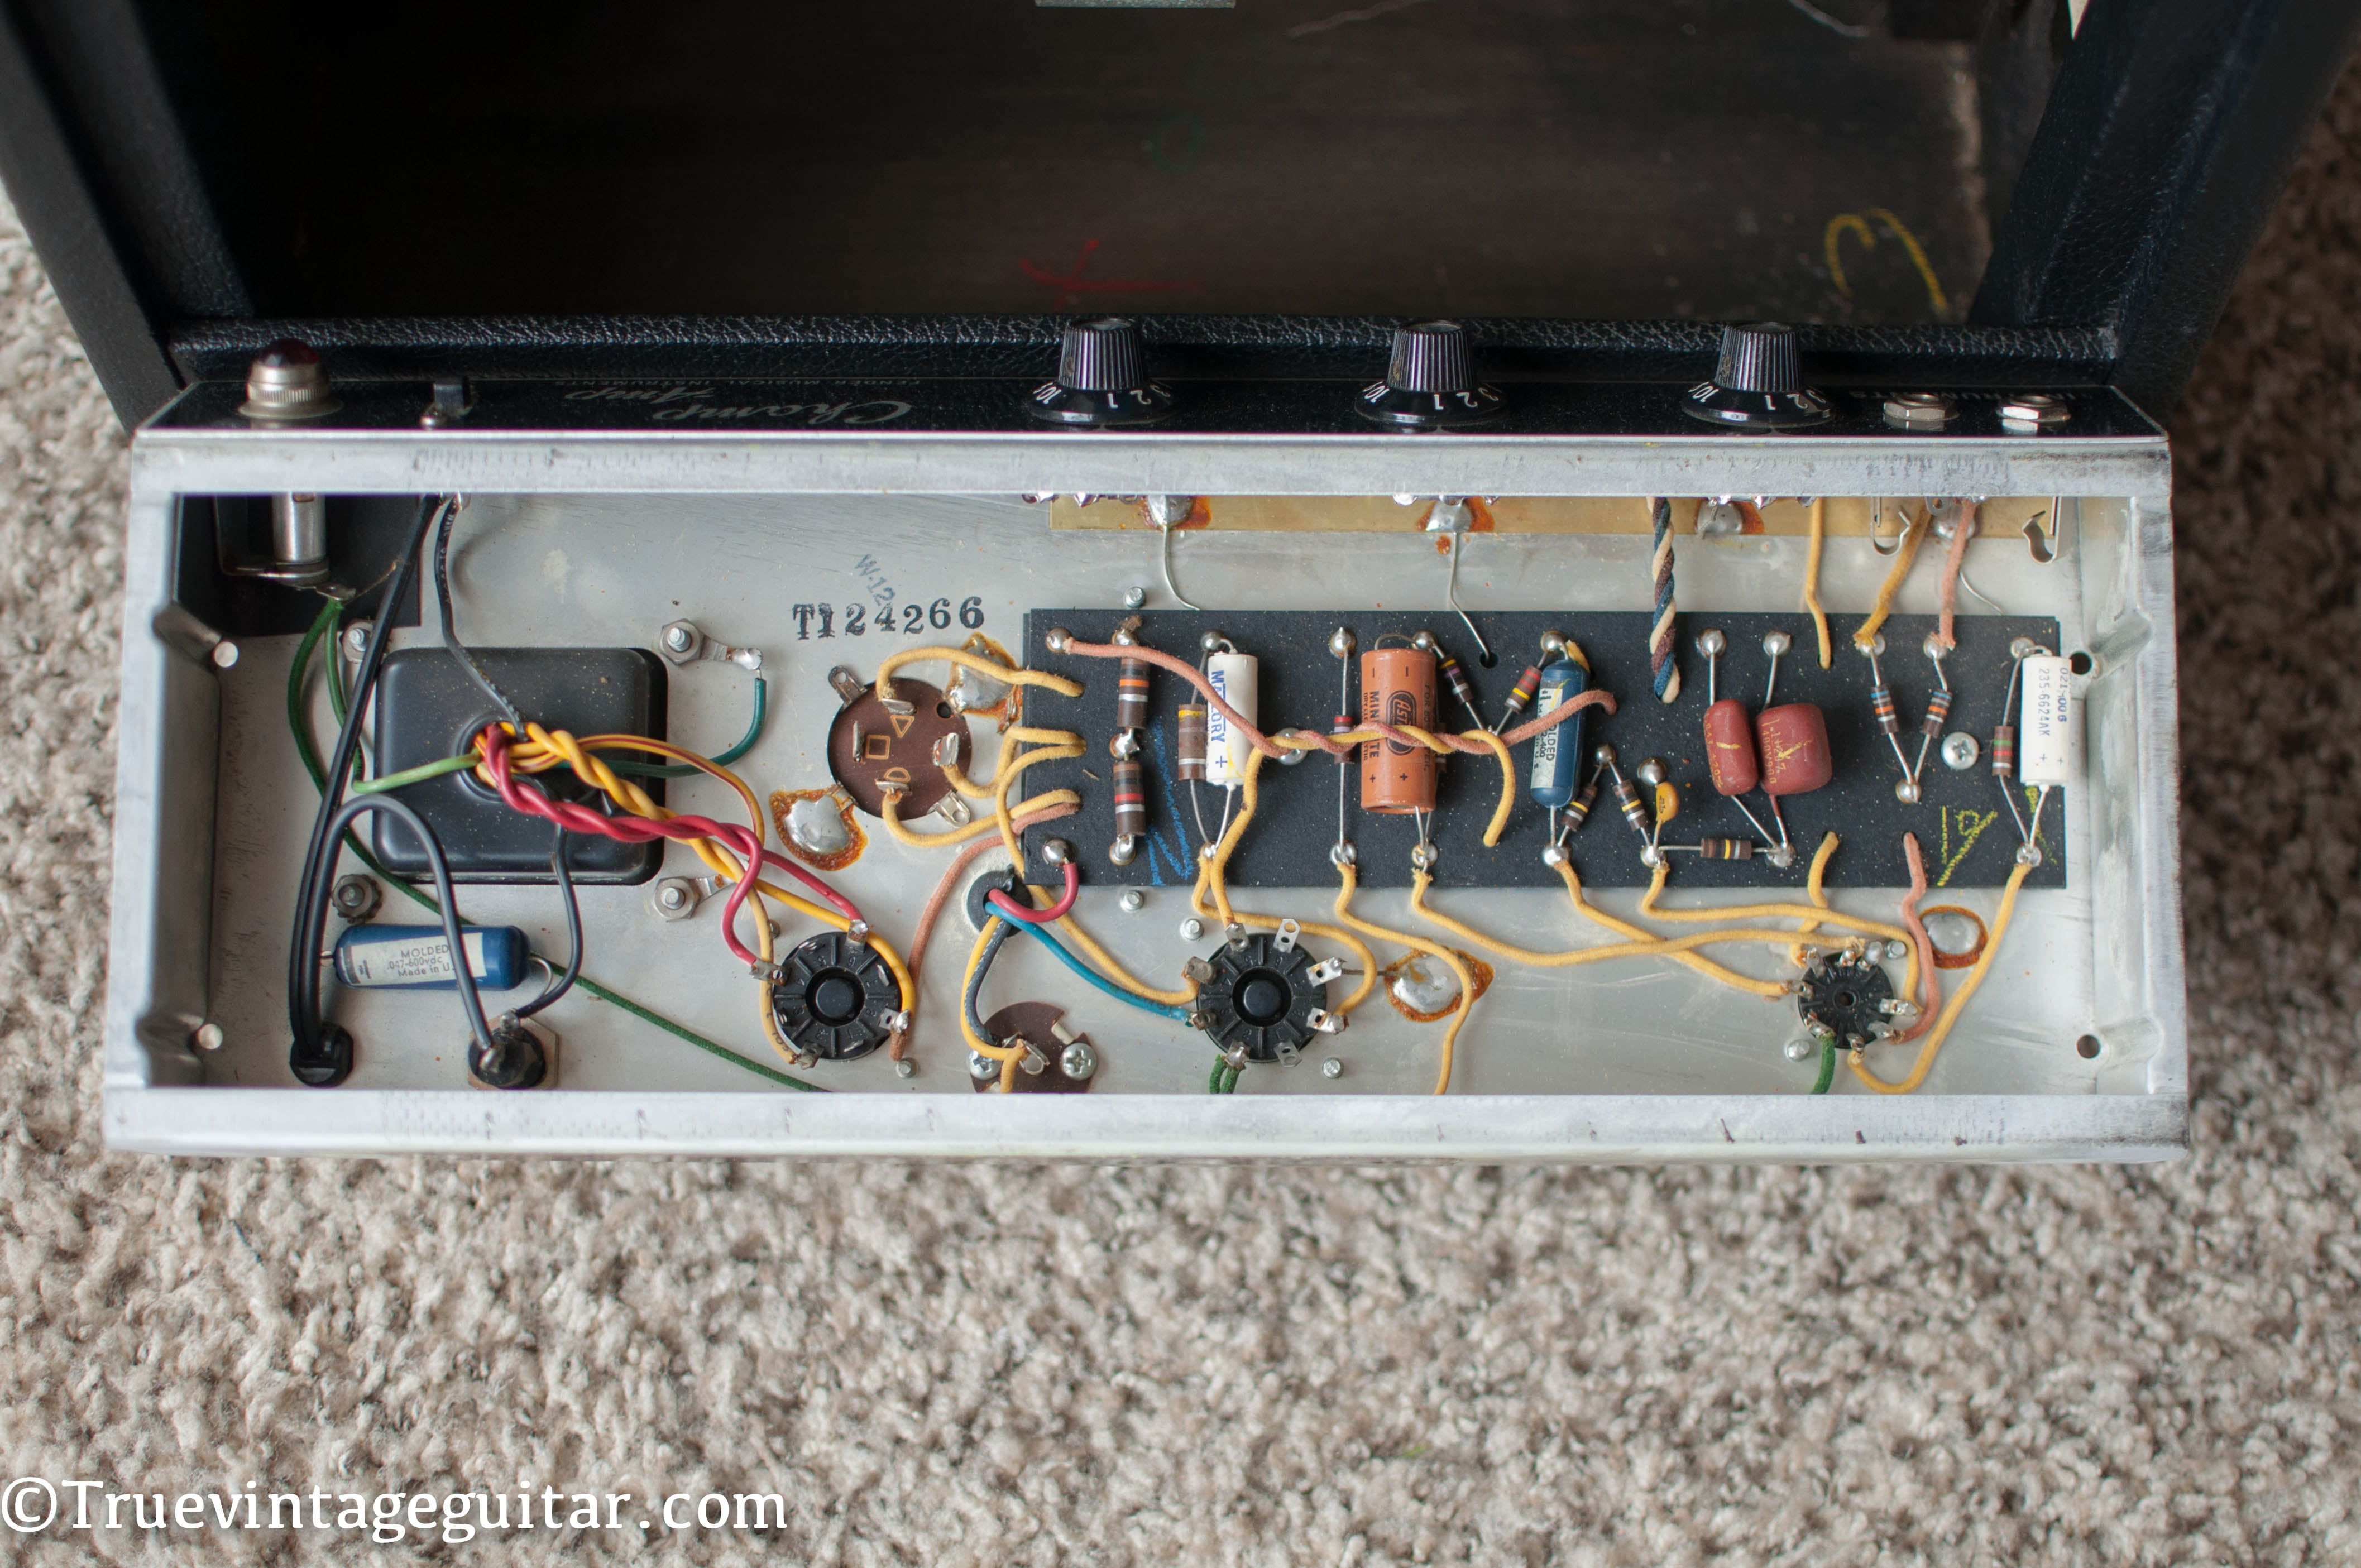 Chassis, circuit, 1966 Fender Champ